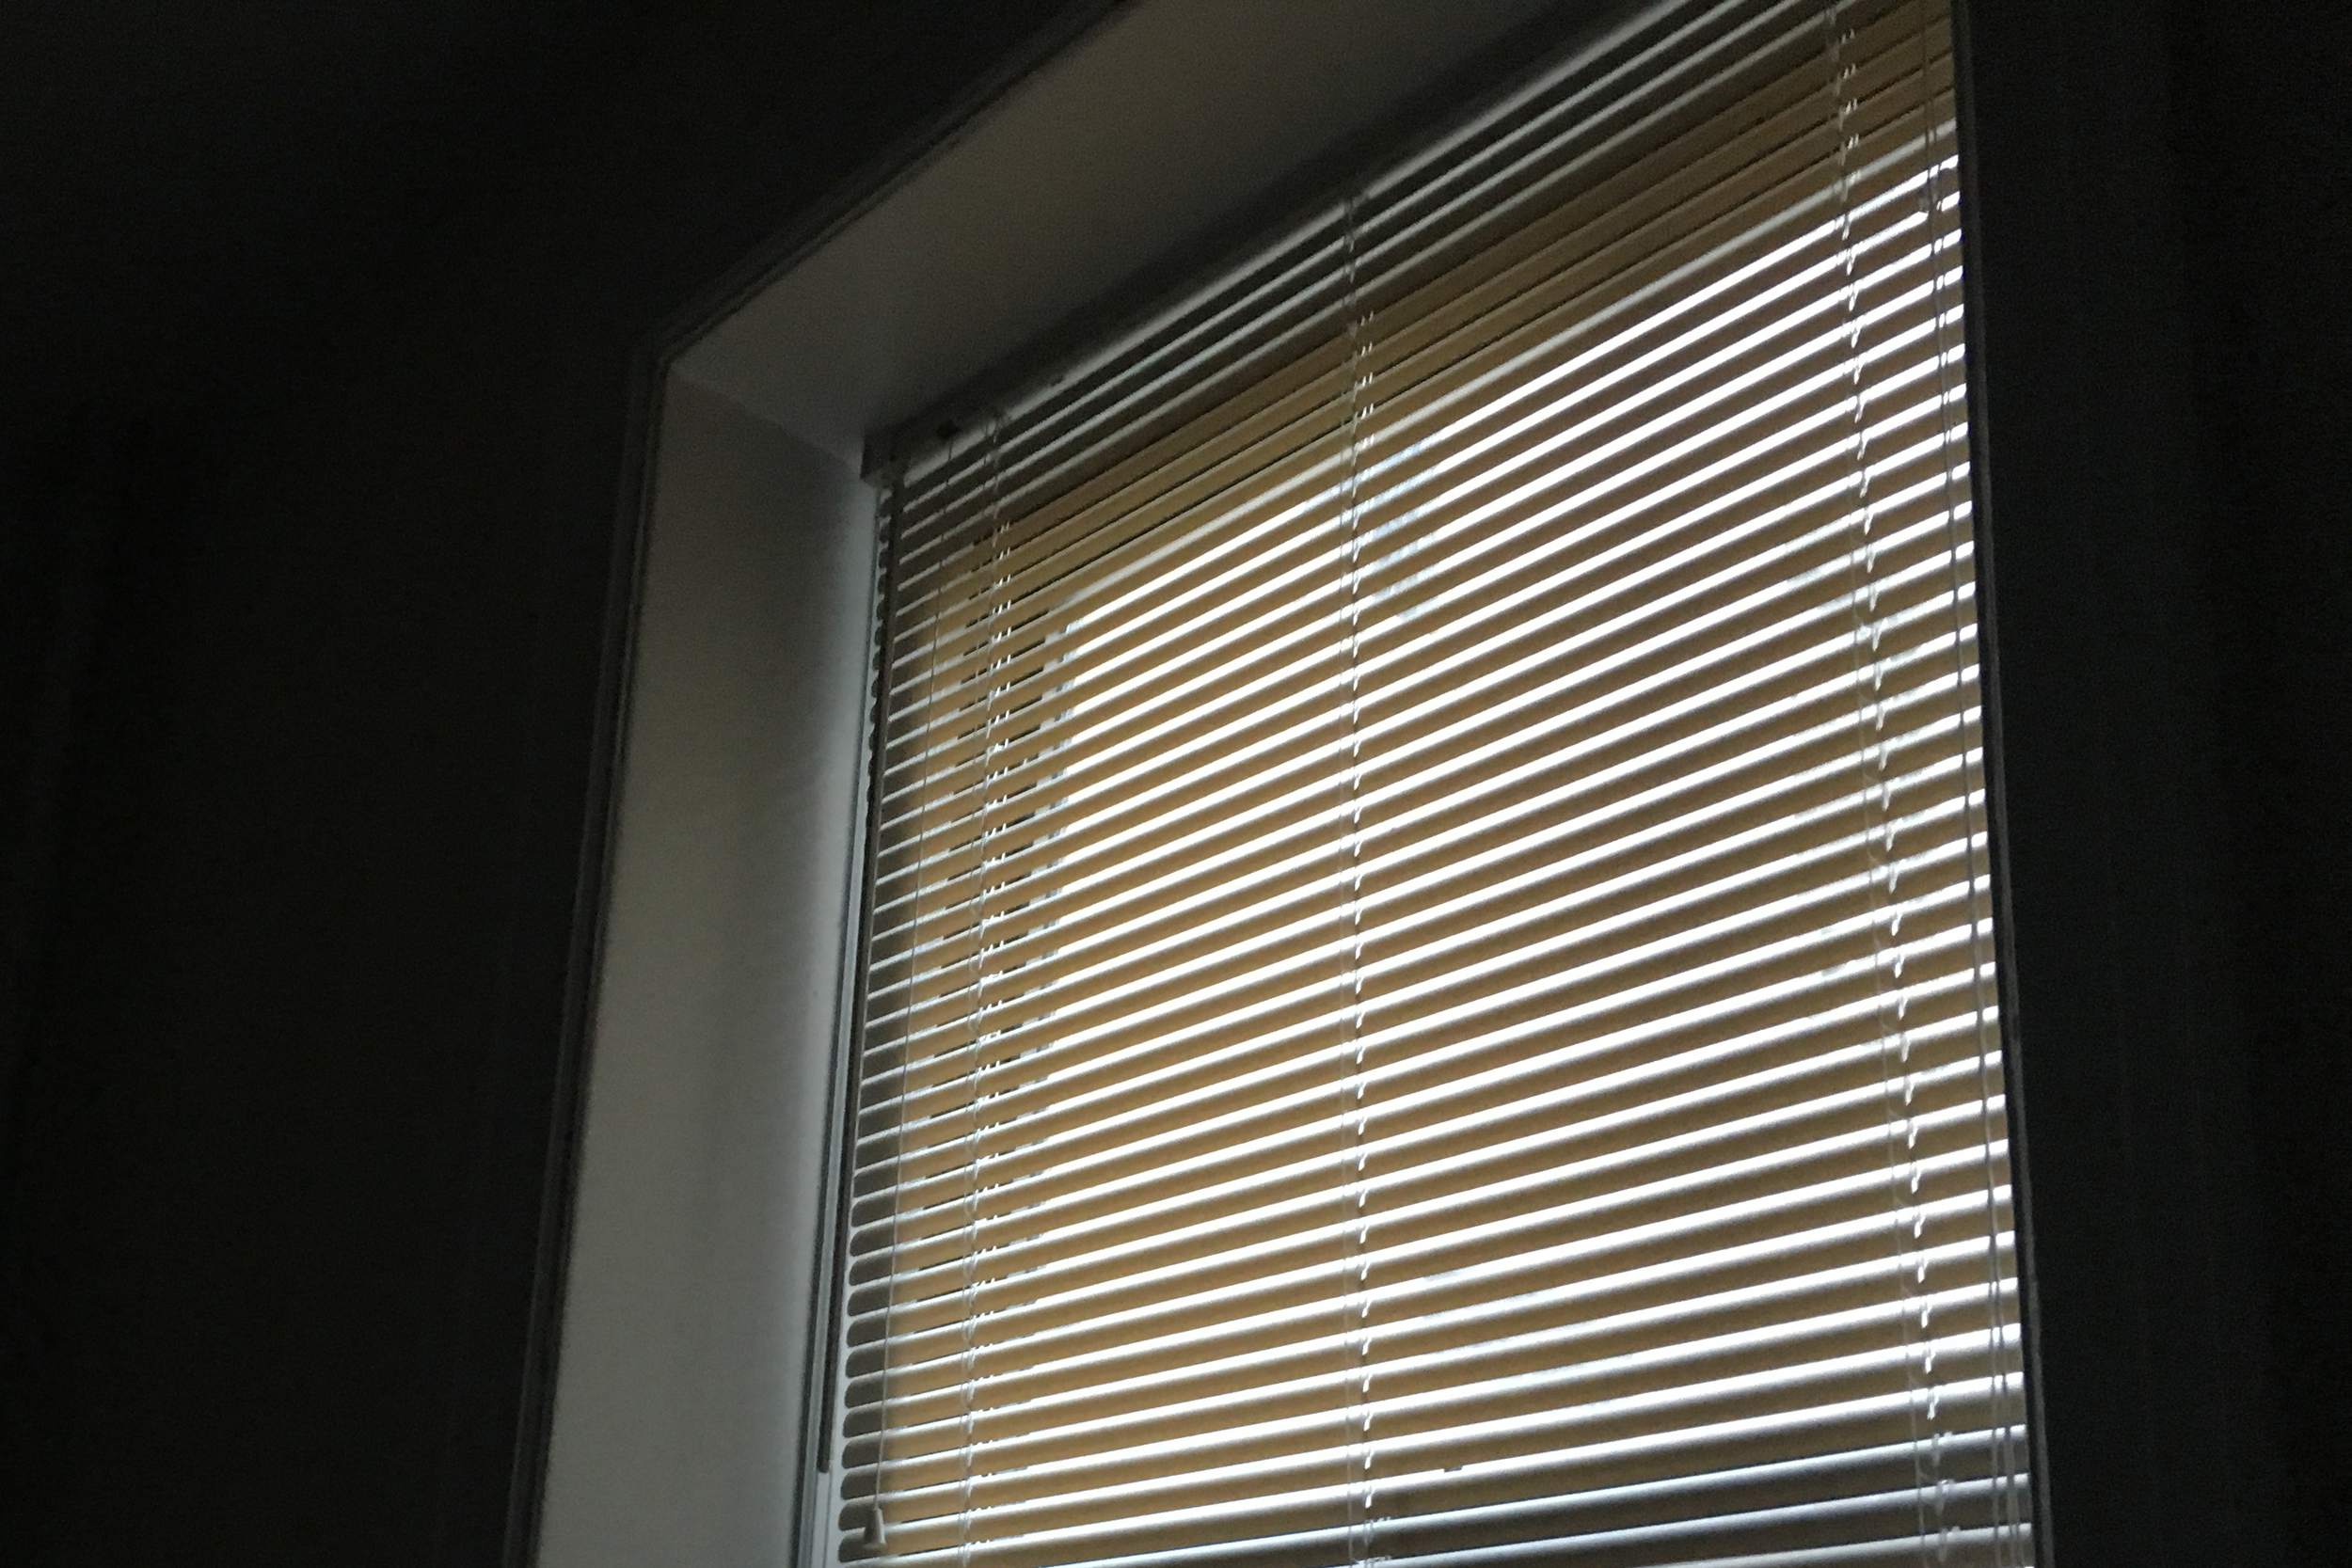 V still sleeping means getting dressed in the dark with just these slivers of light coming through the window